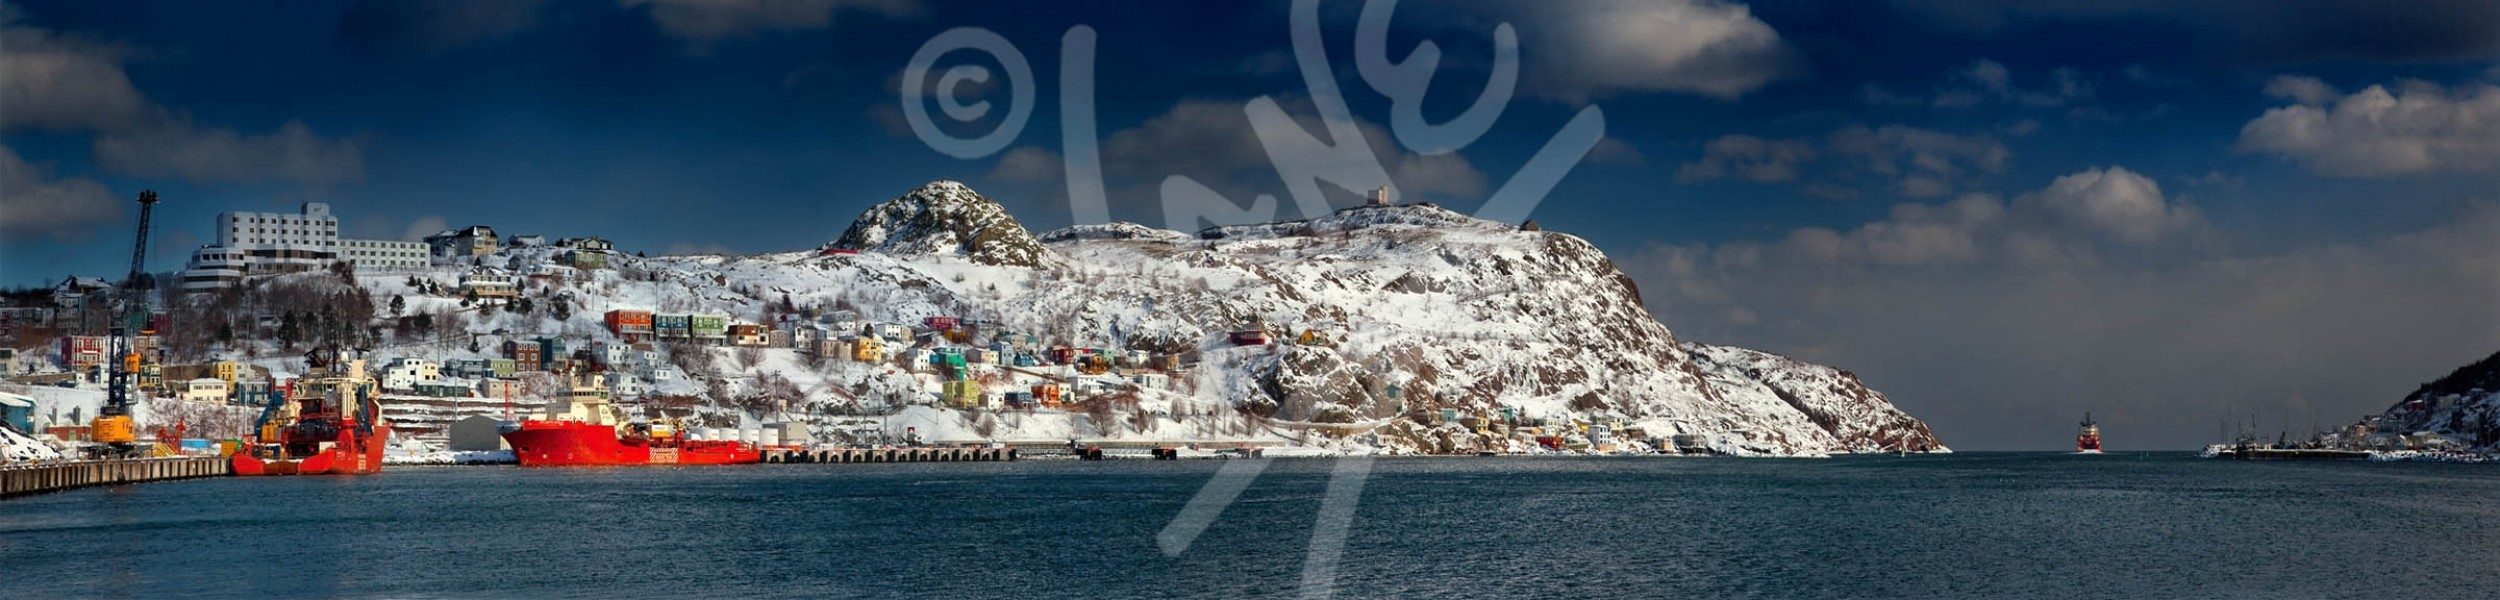 St. John's, harbour in winter